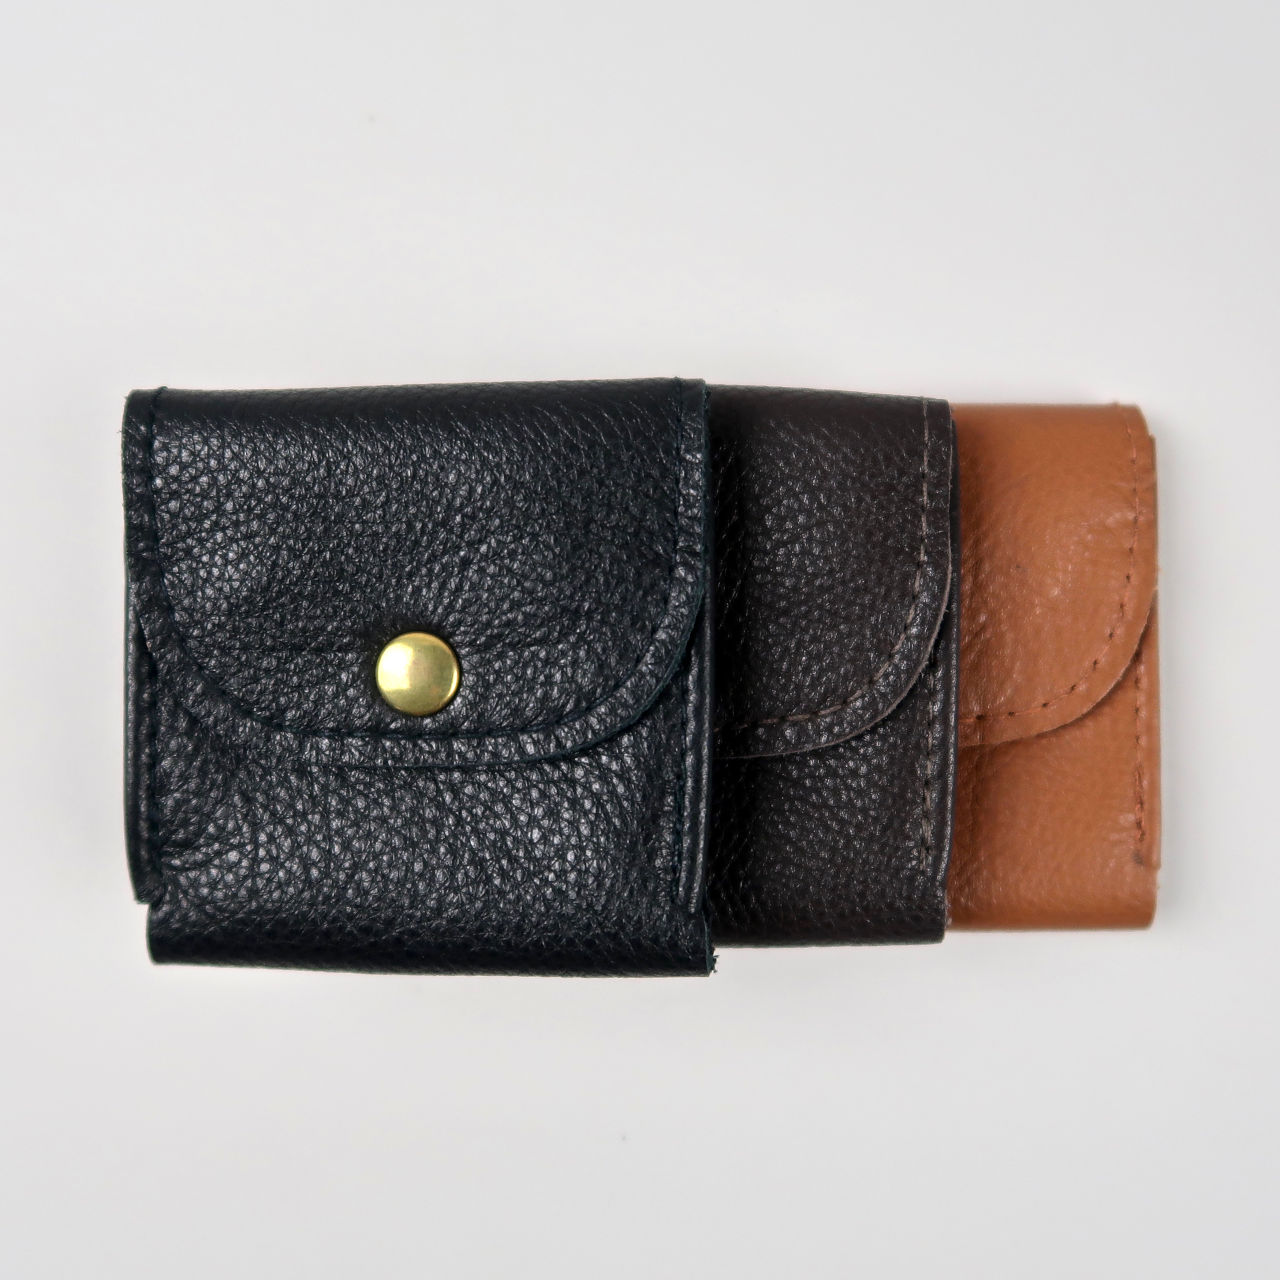 Leather pocket watch pouches